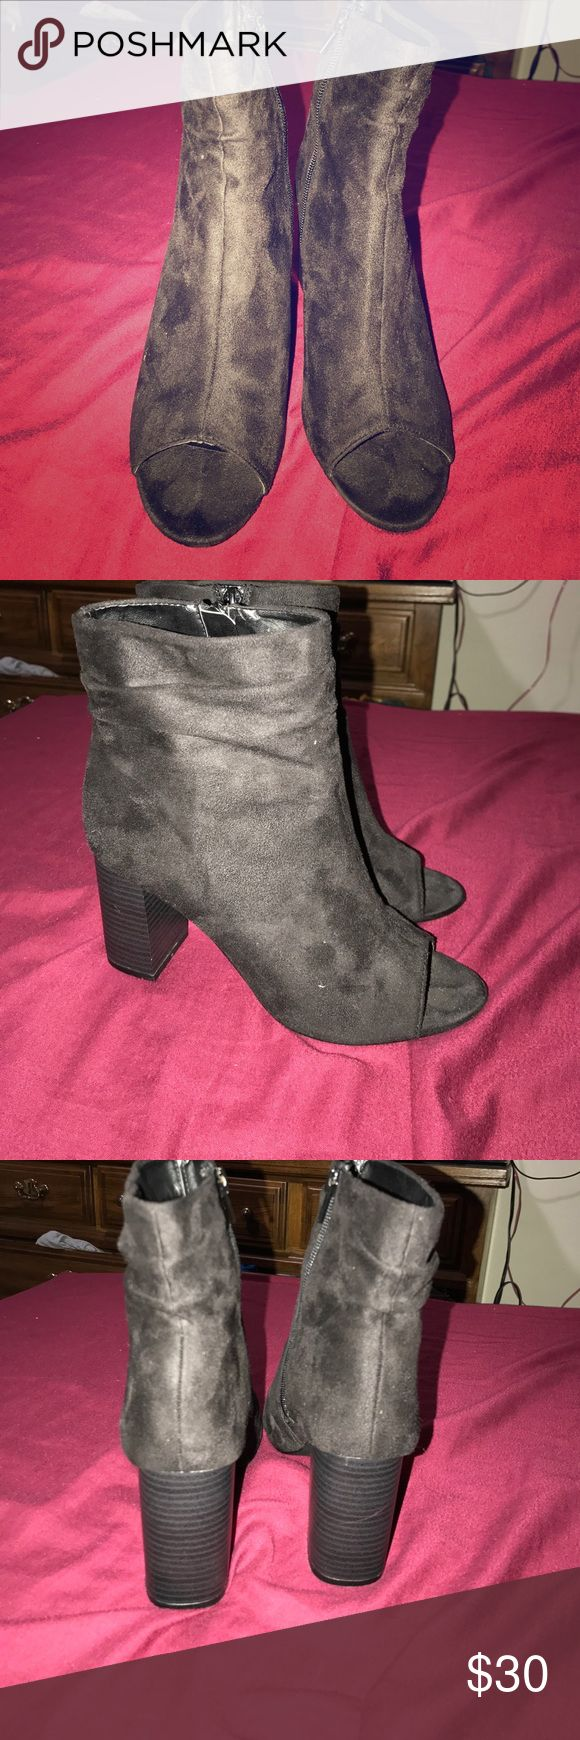 Charlotte rouse Black suade booties Charlotte rouse Black suade booties. Never been worn and in great condition. They're open toes and have zipper on the side. OPEN TO OFFERS BUT NO TRADES Charlotte Russe Shoes Ankle Boots & Booties